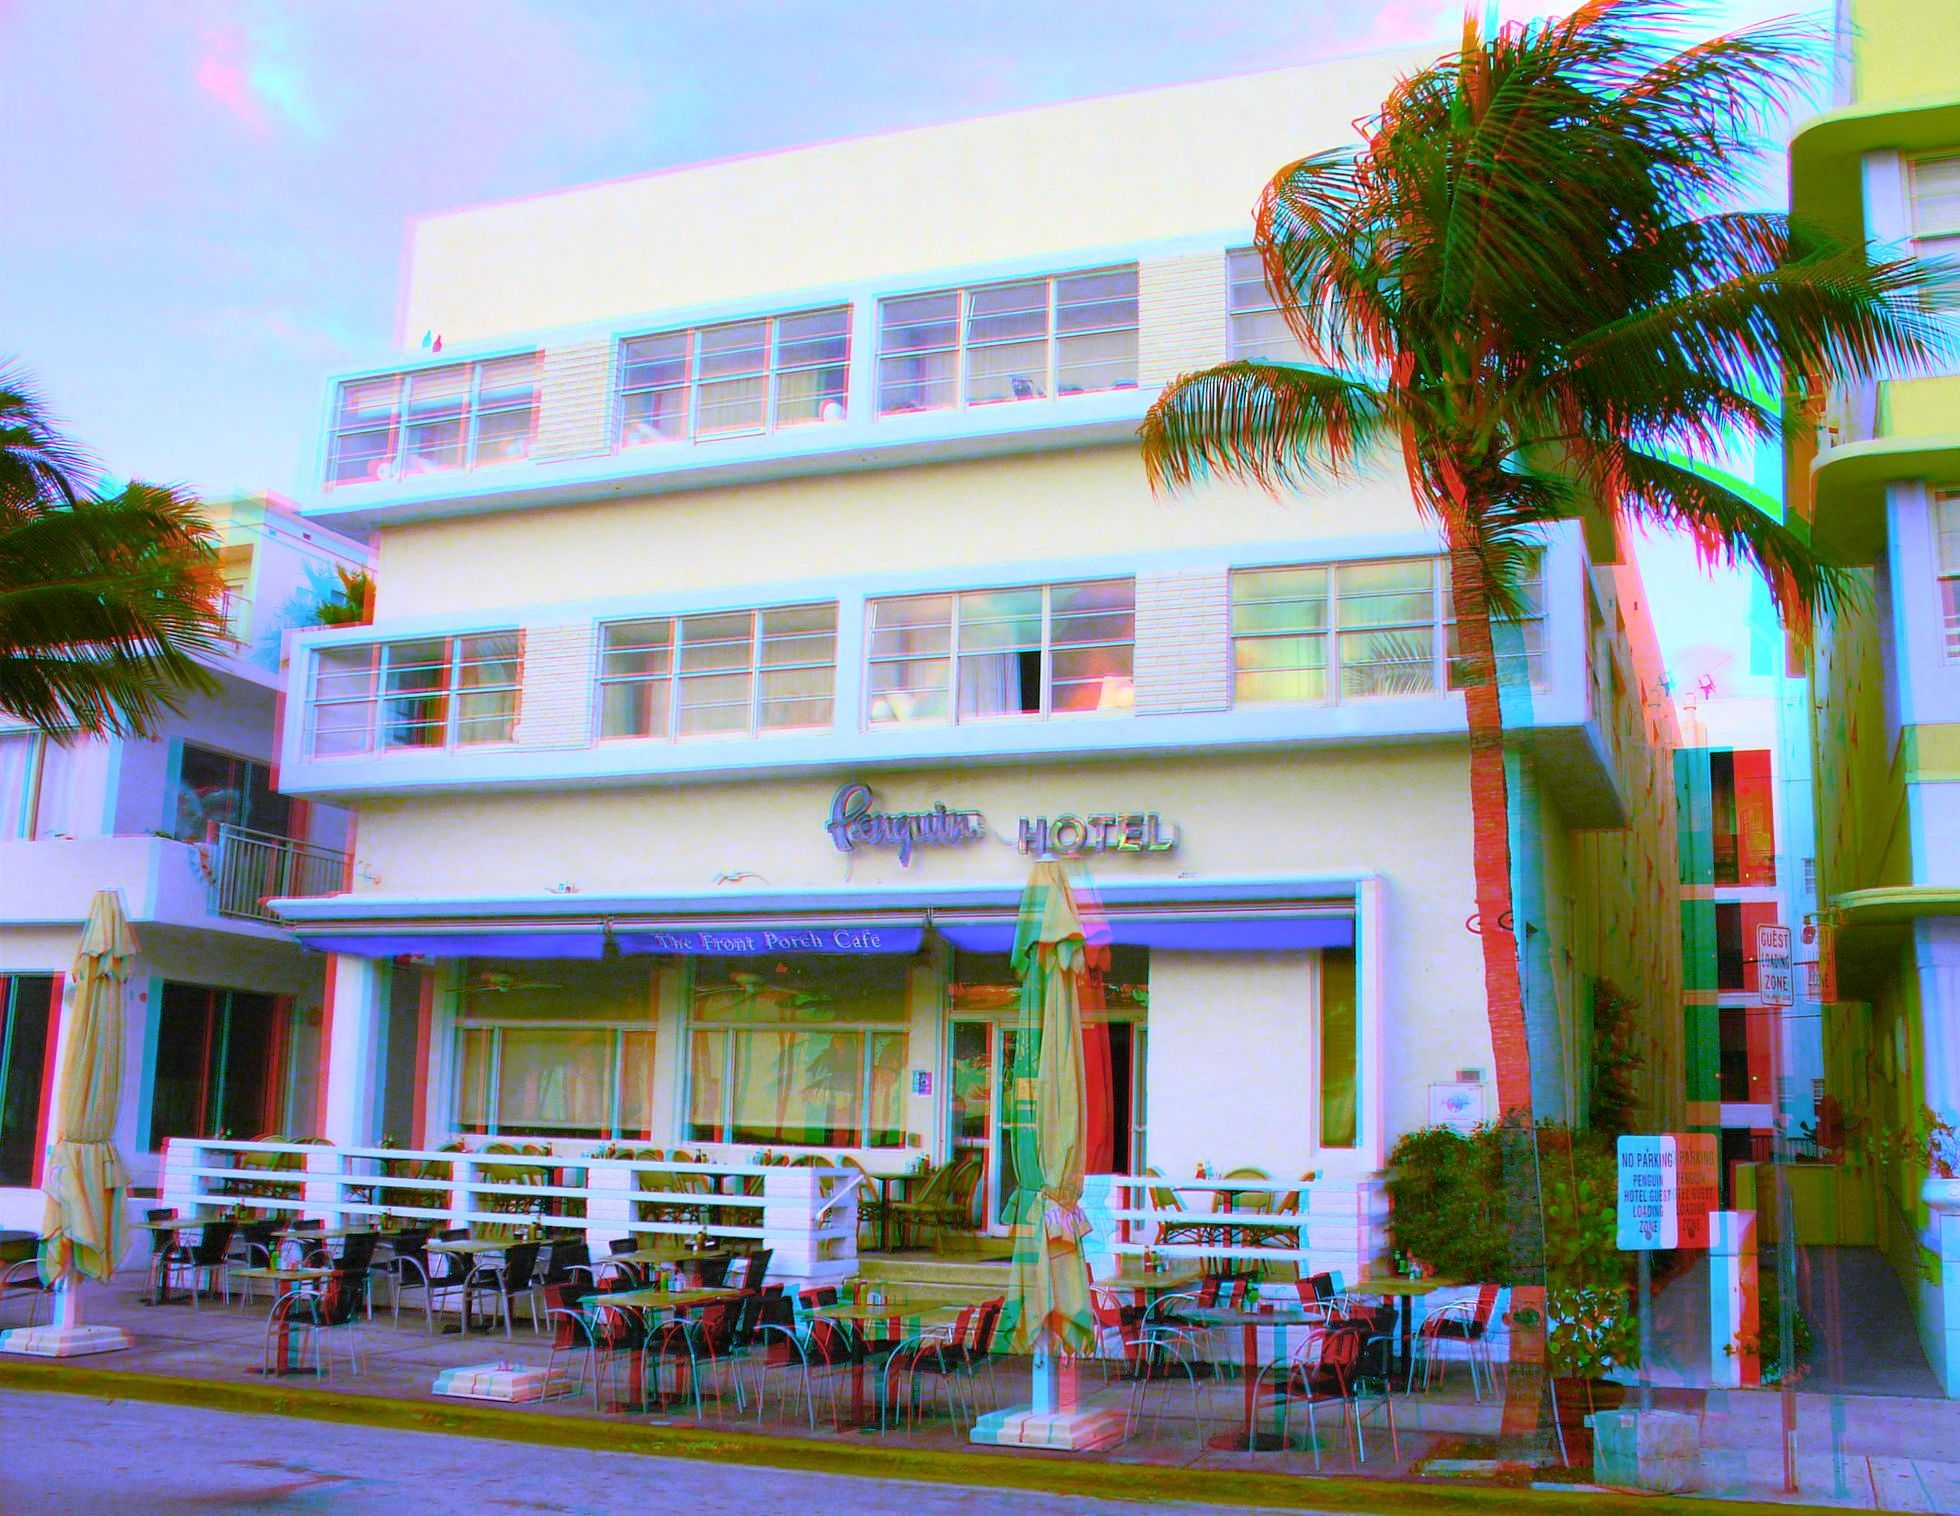 1418 Ocean Drive The Penguin Hotel Built 1948 Henry Hohauser Style Mid Century Modern Google Anaglyph Gles To View In